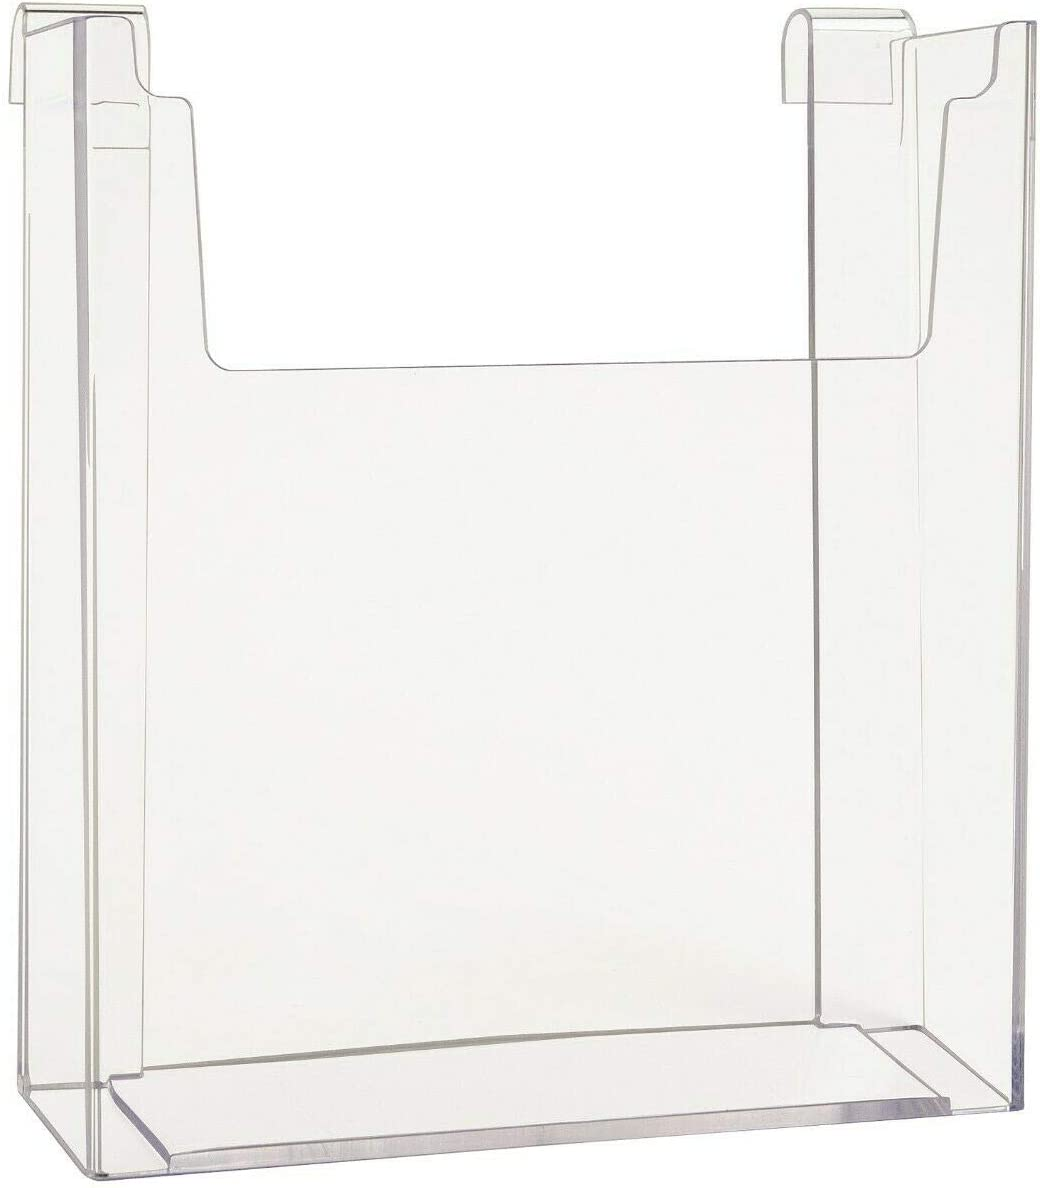 Brochure /& Magazine Holder Gridwall 8.5 x 11 Clear Acrylic Literature 5 Pack